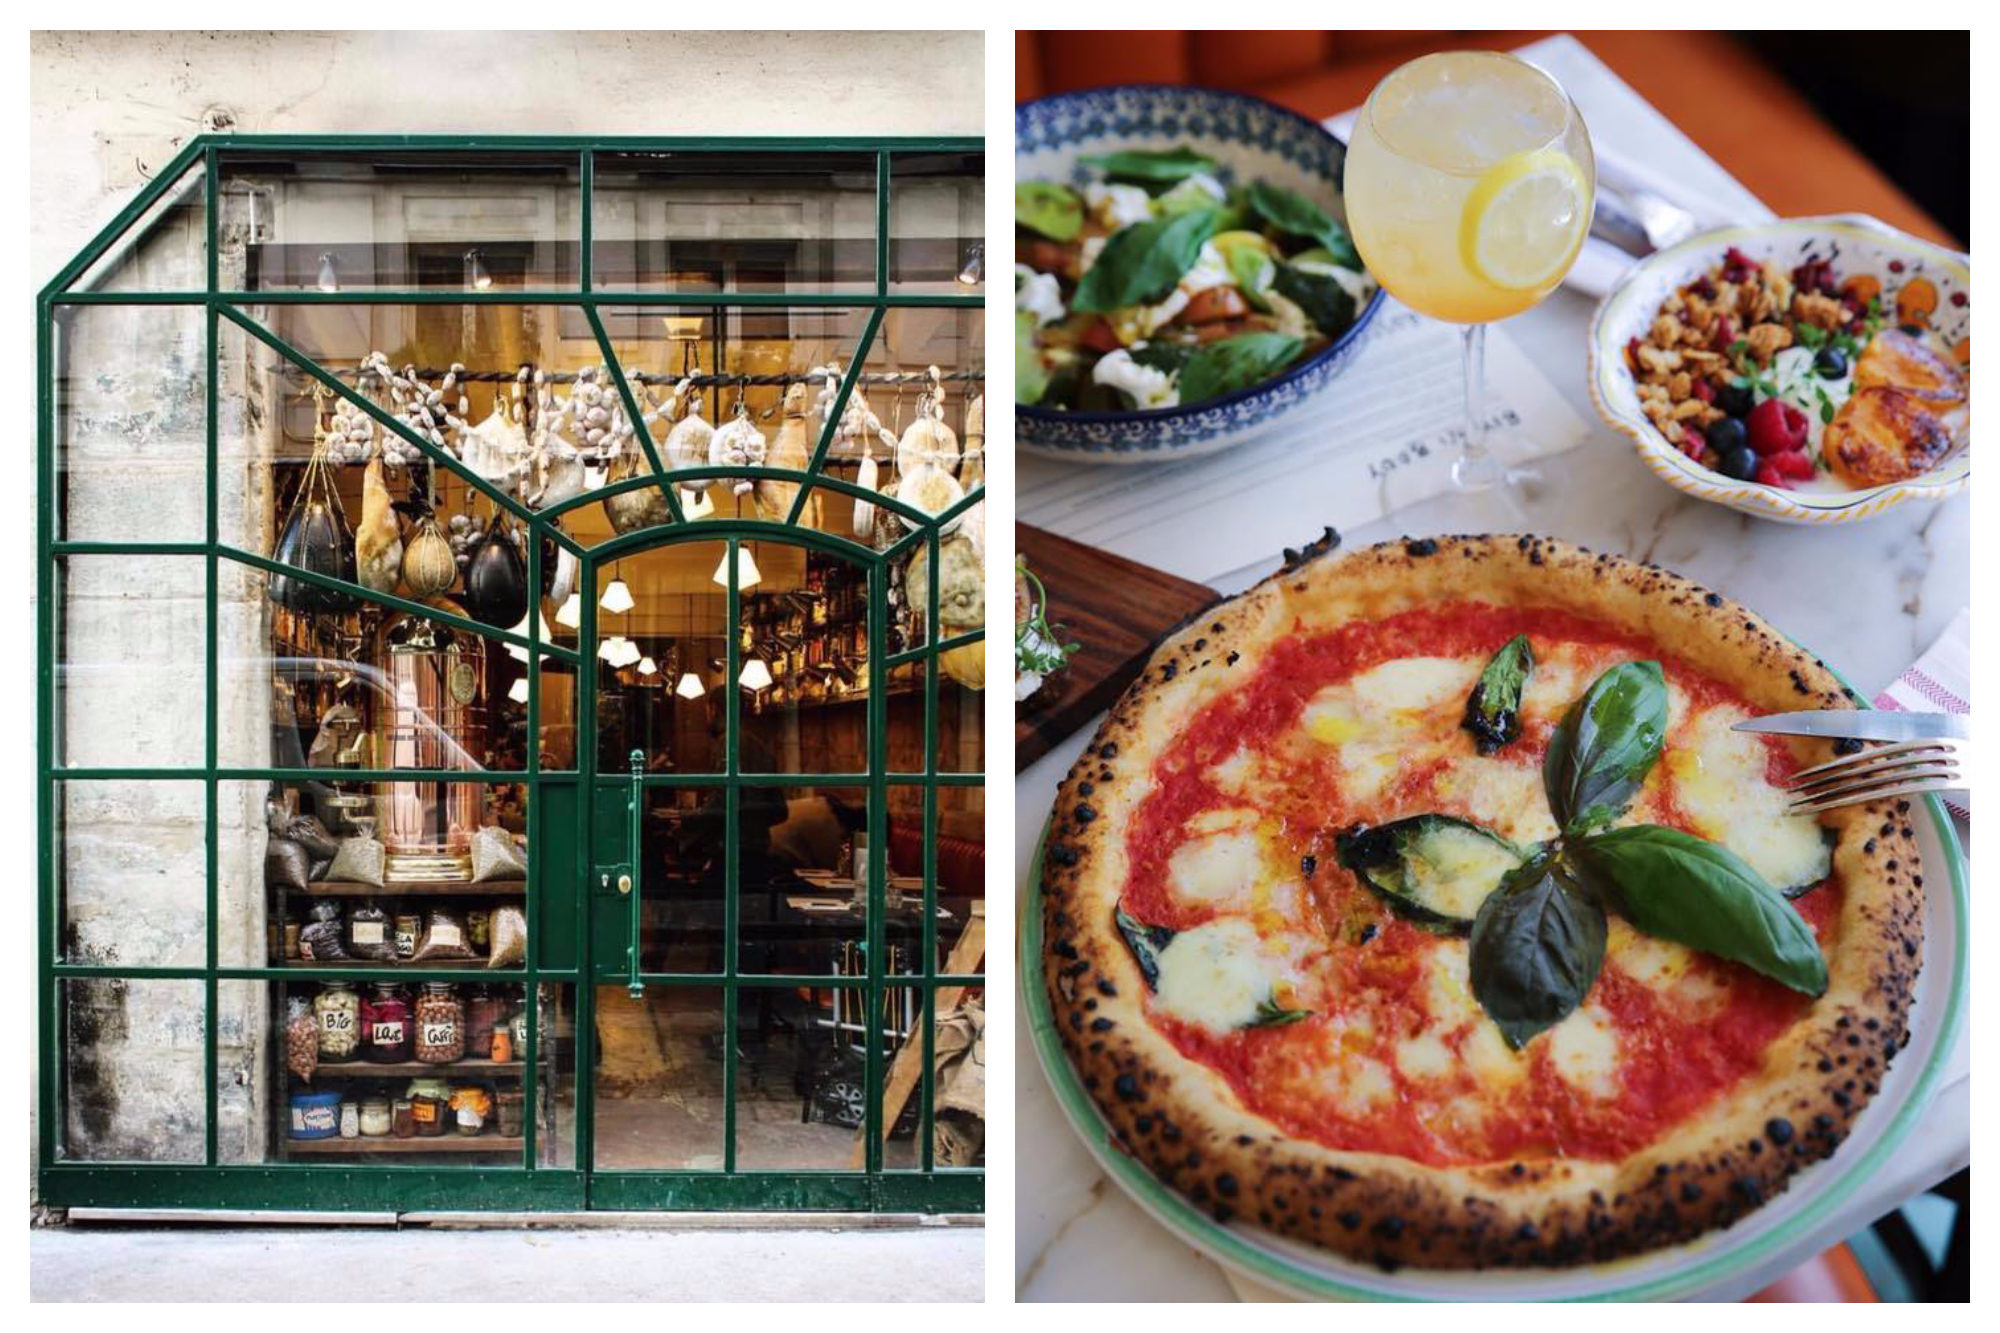 The green metal frame exterior of the BigLove Caffè in Paris with hams hanging in the window (left) and one of their margherita gluten-free pizzas set on a table next to a salad (right).